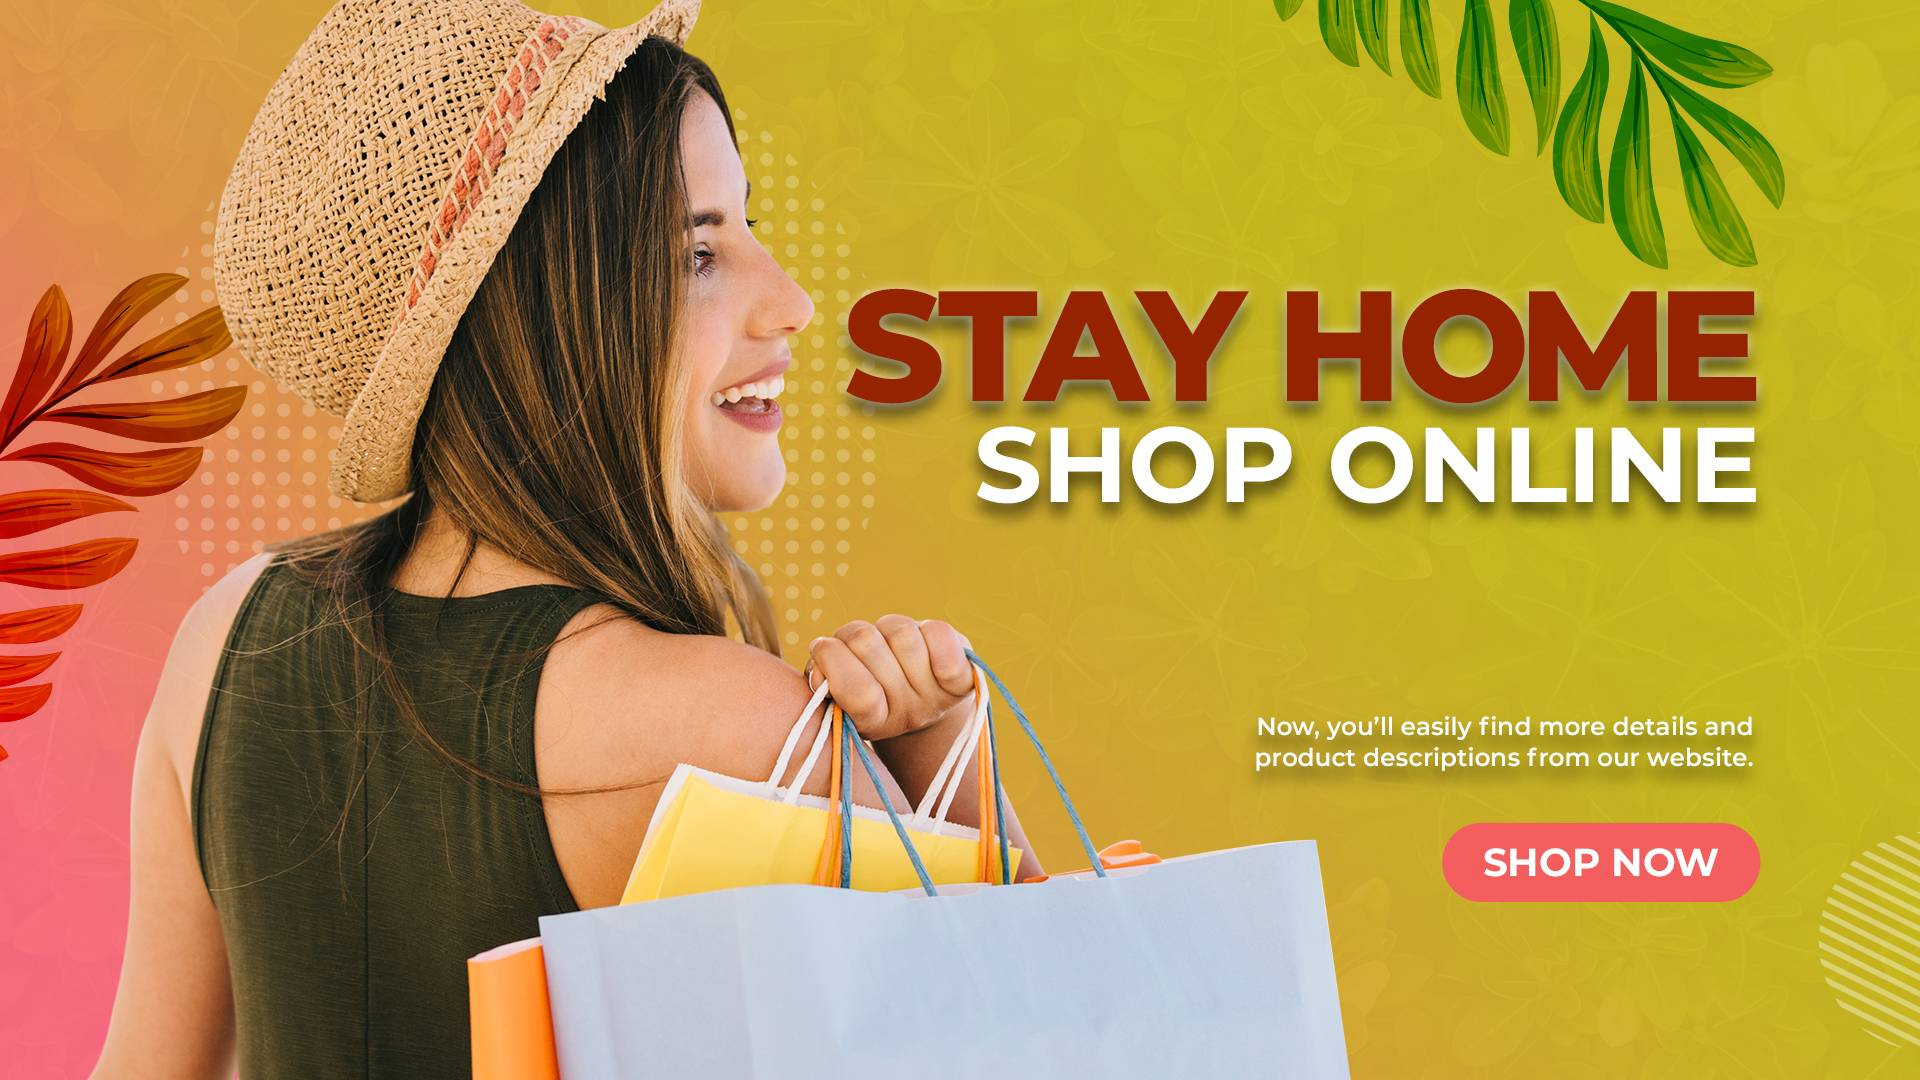 STAY HOME SHOP ONLINE